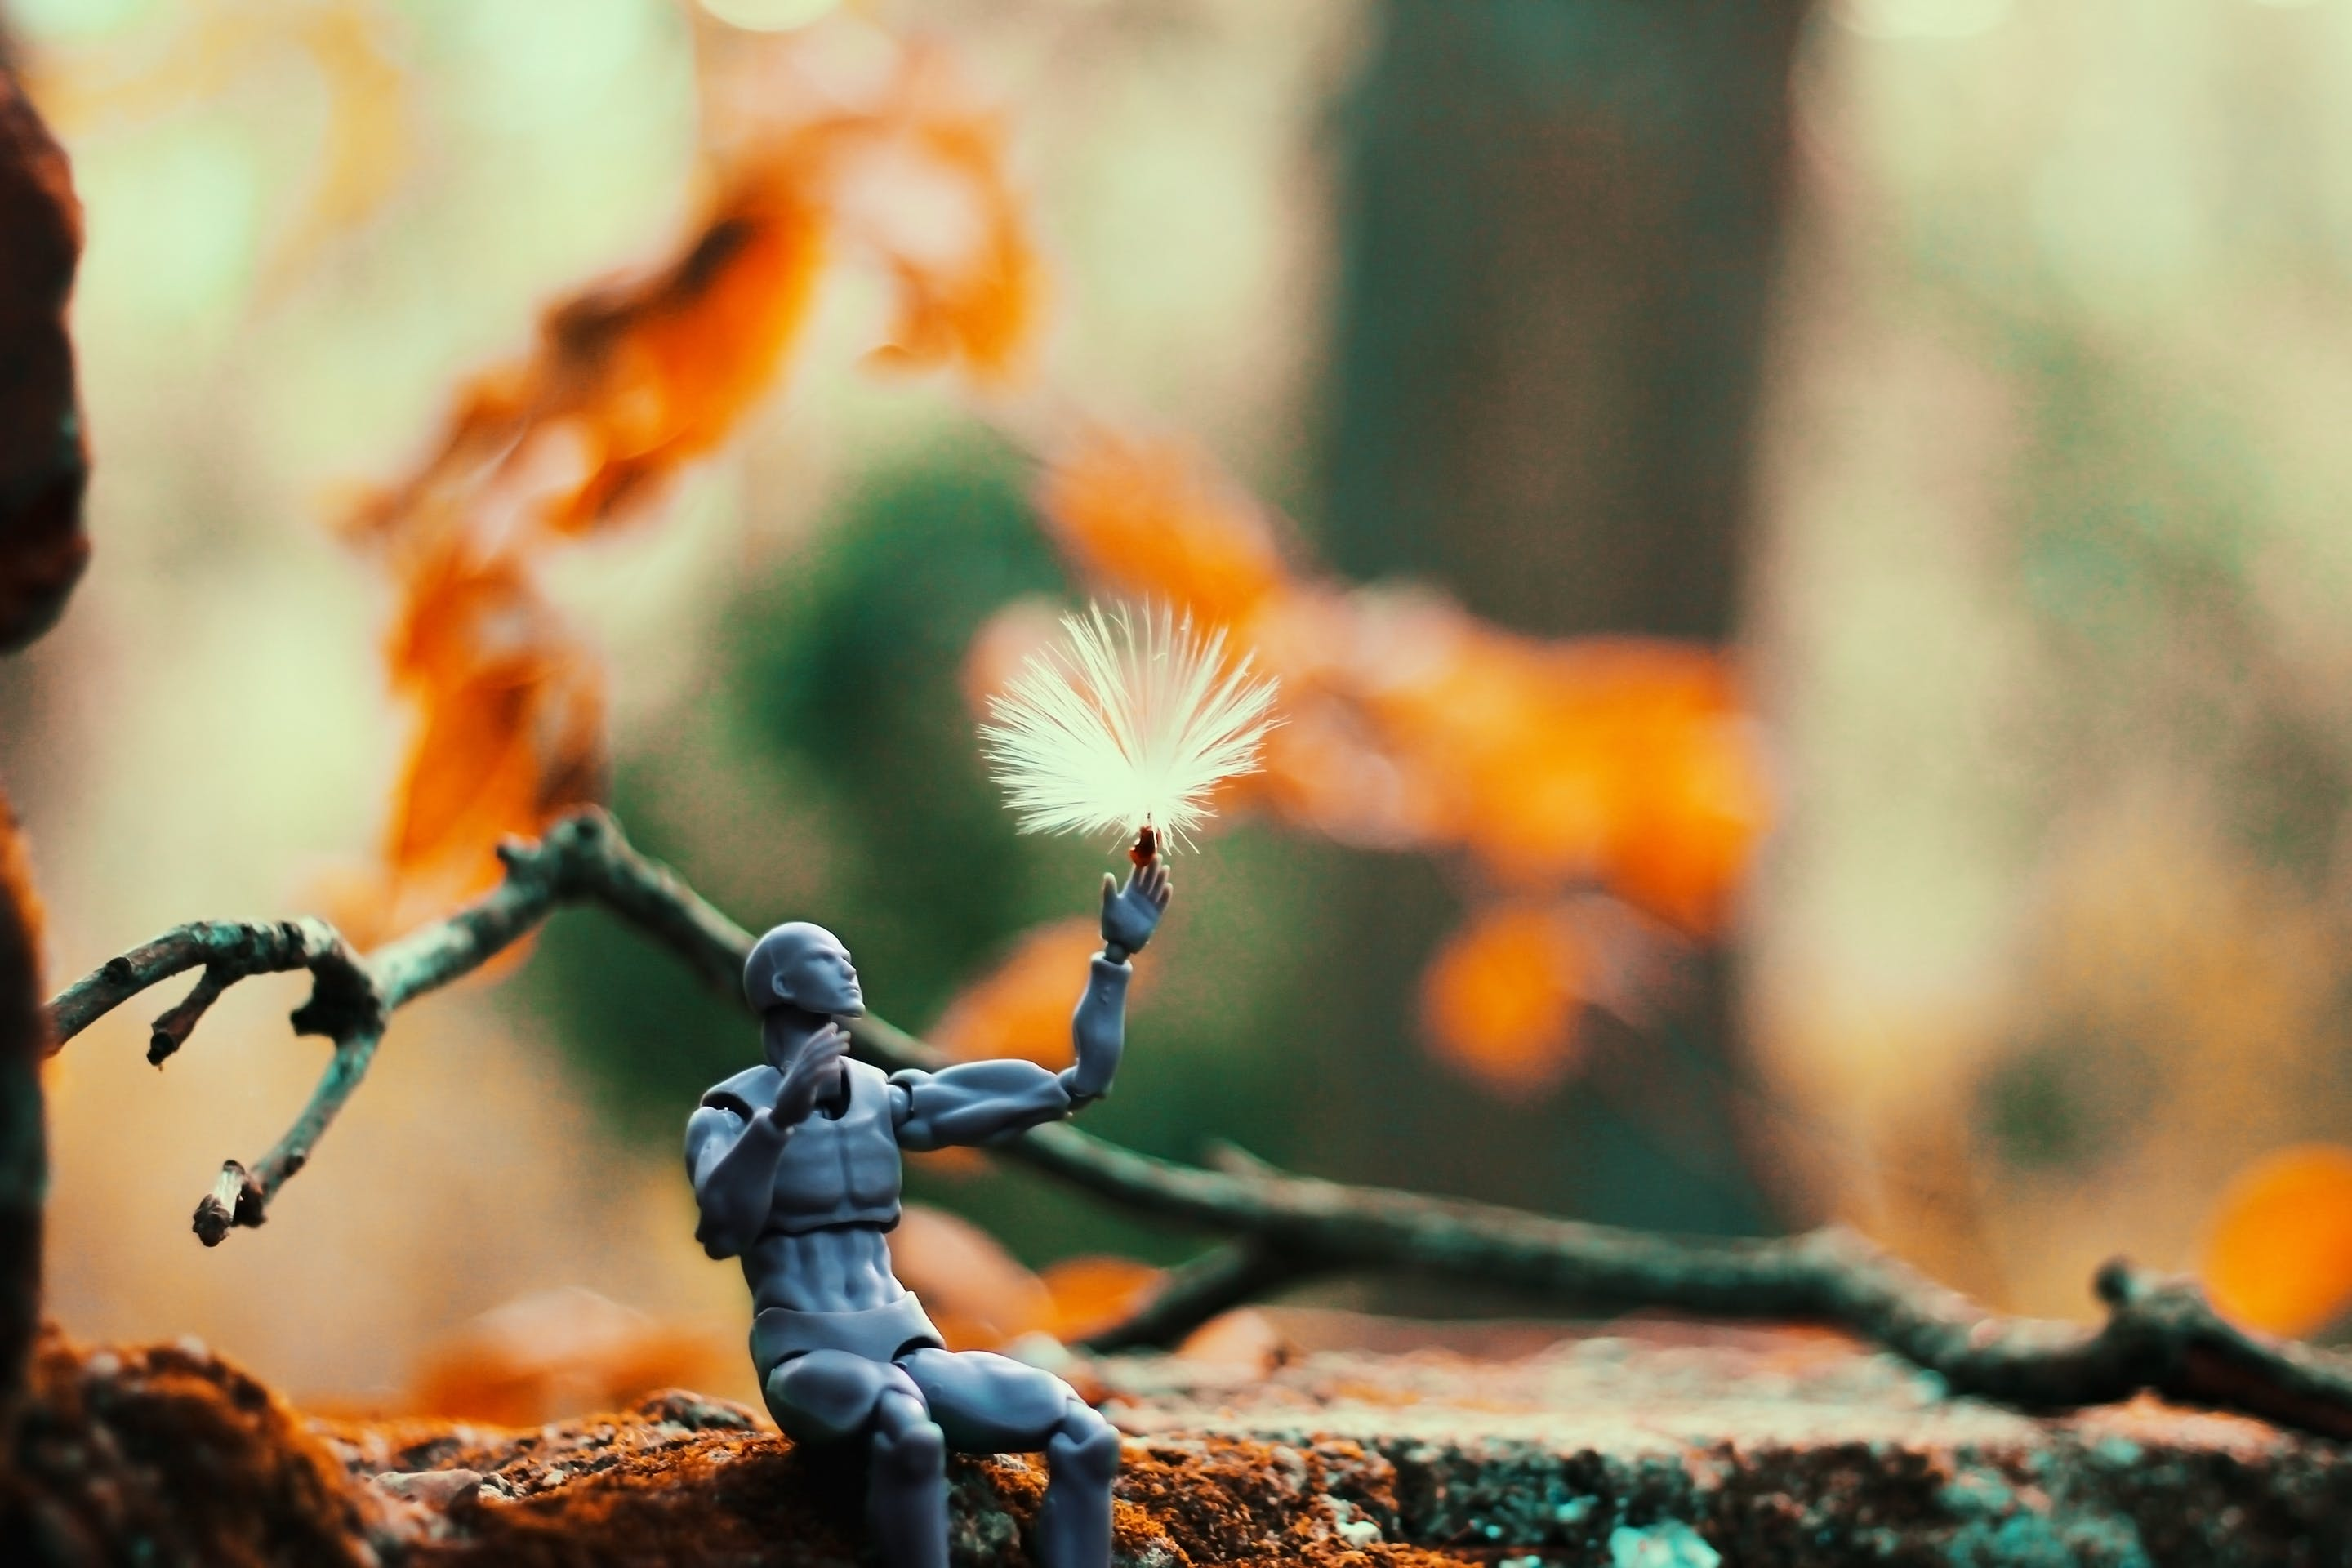 Sitting Gray Action Figure Beside Brown Tree Branch